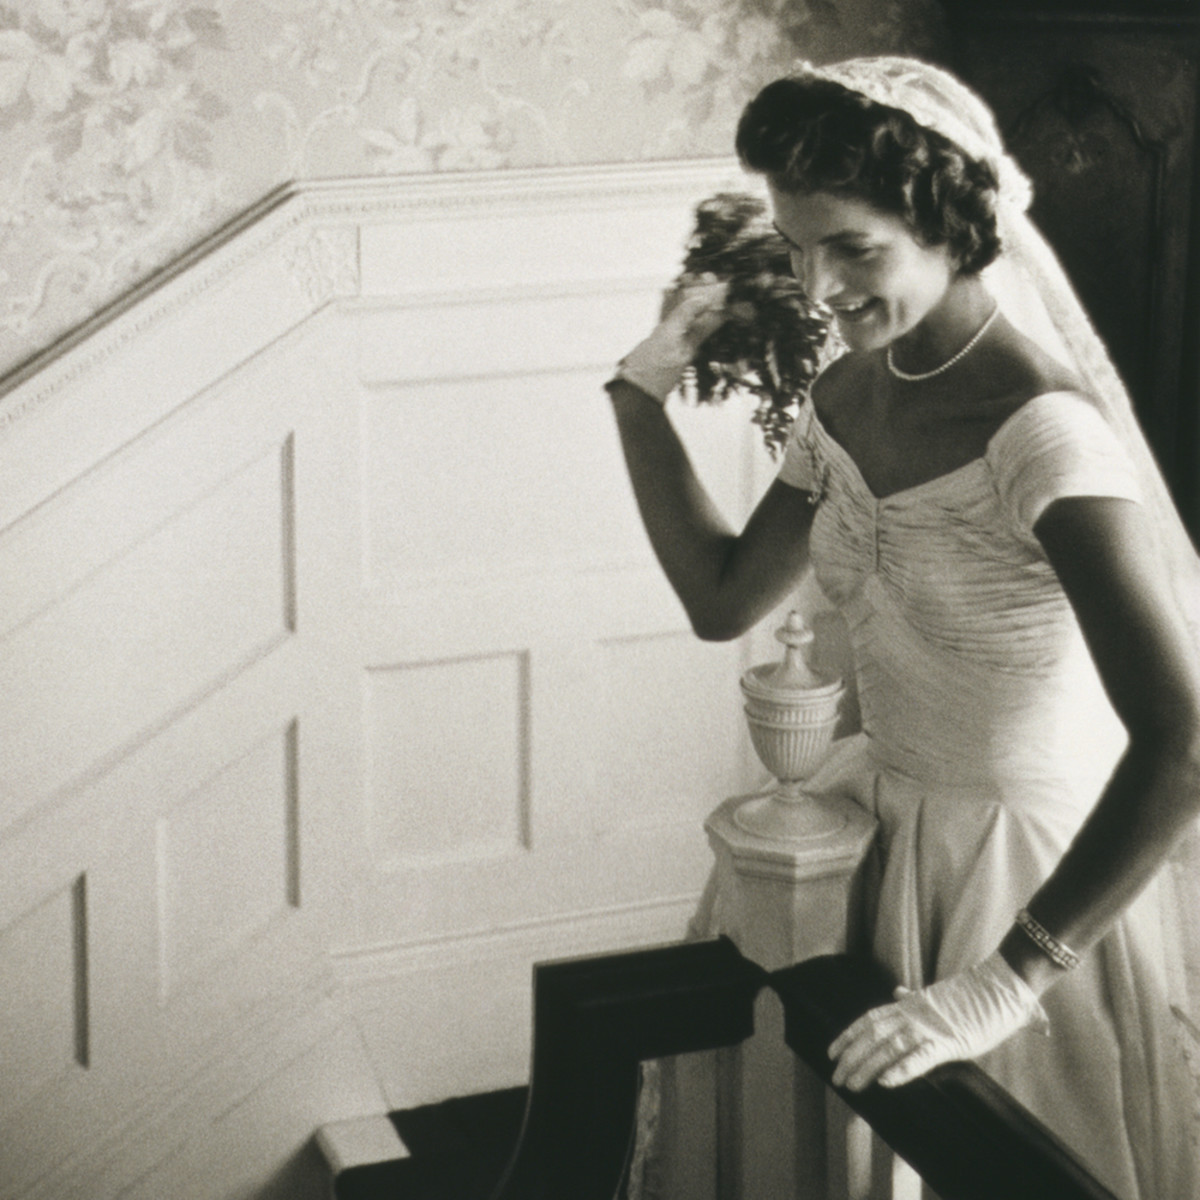 Jackie Kennedy throwing her bridal bouquet